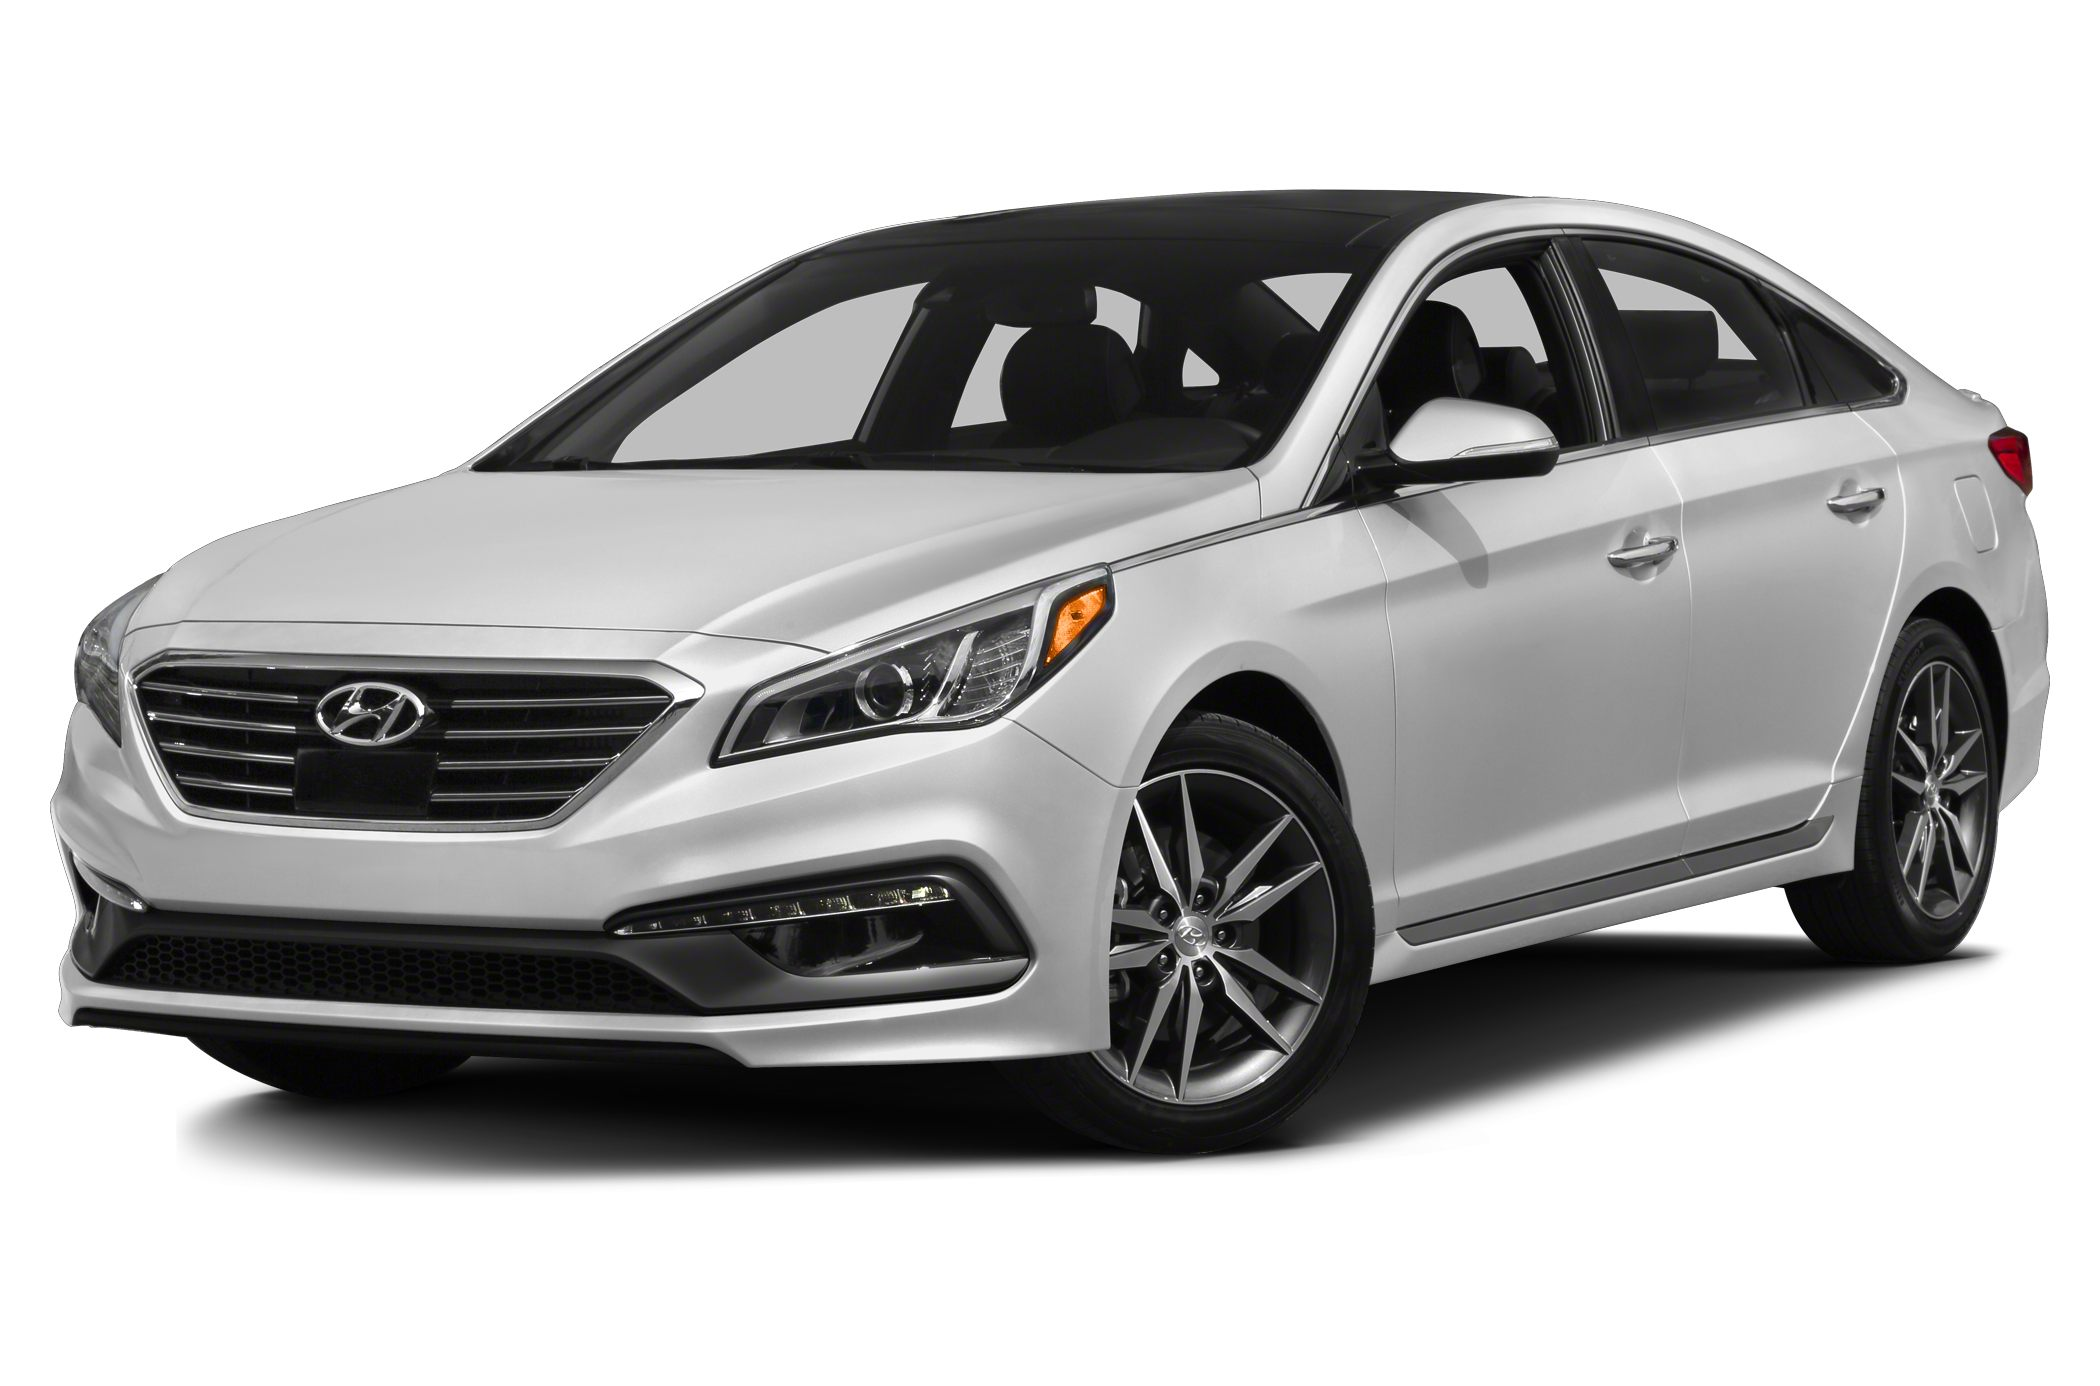 2015 Hyundai Sonata SE Sedan for sale in Mentor for $23,565 with 0 miles.